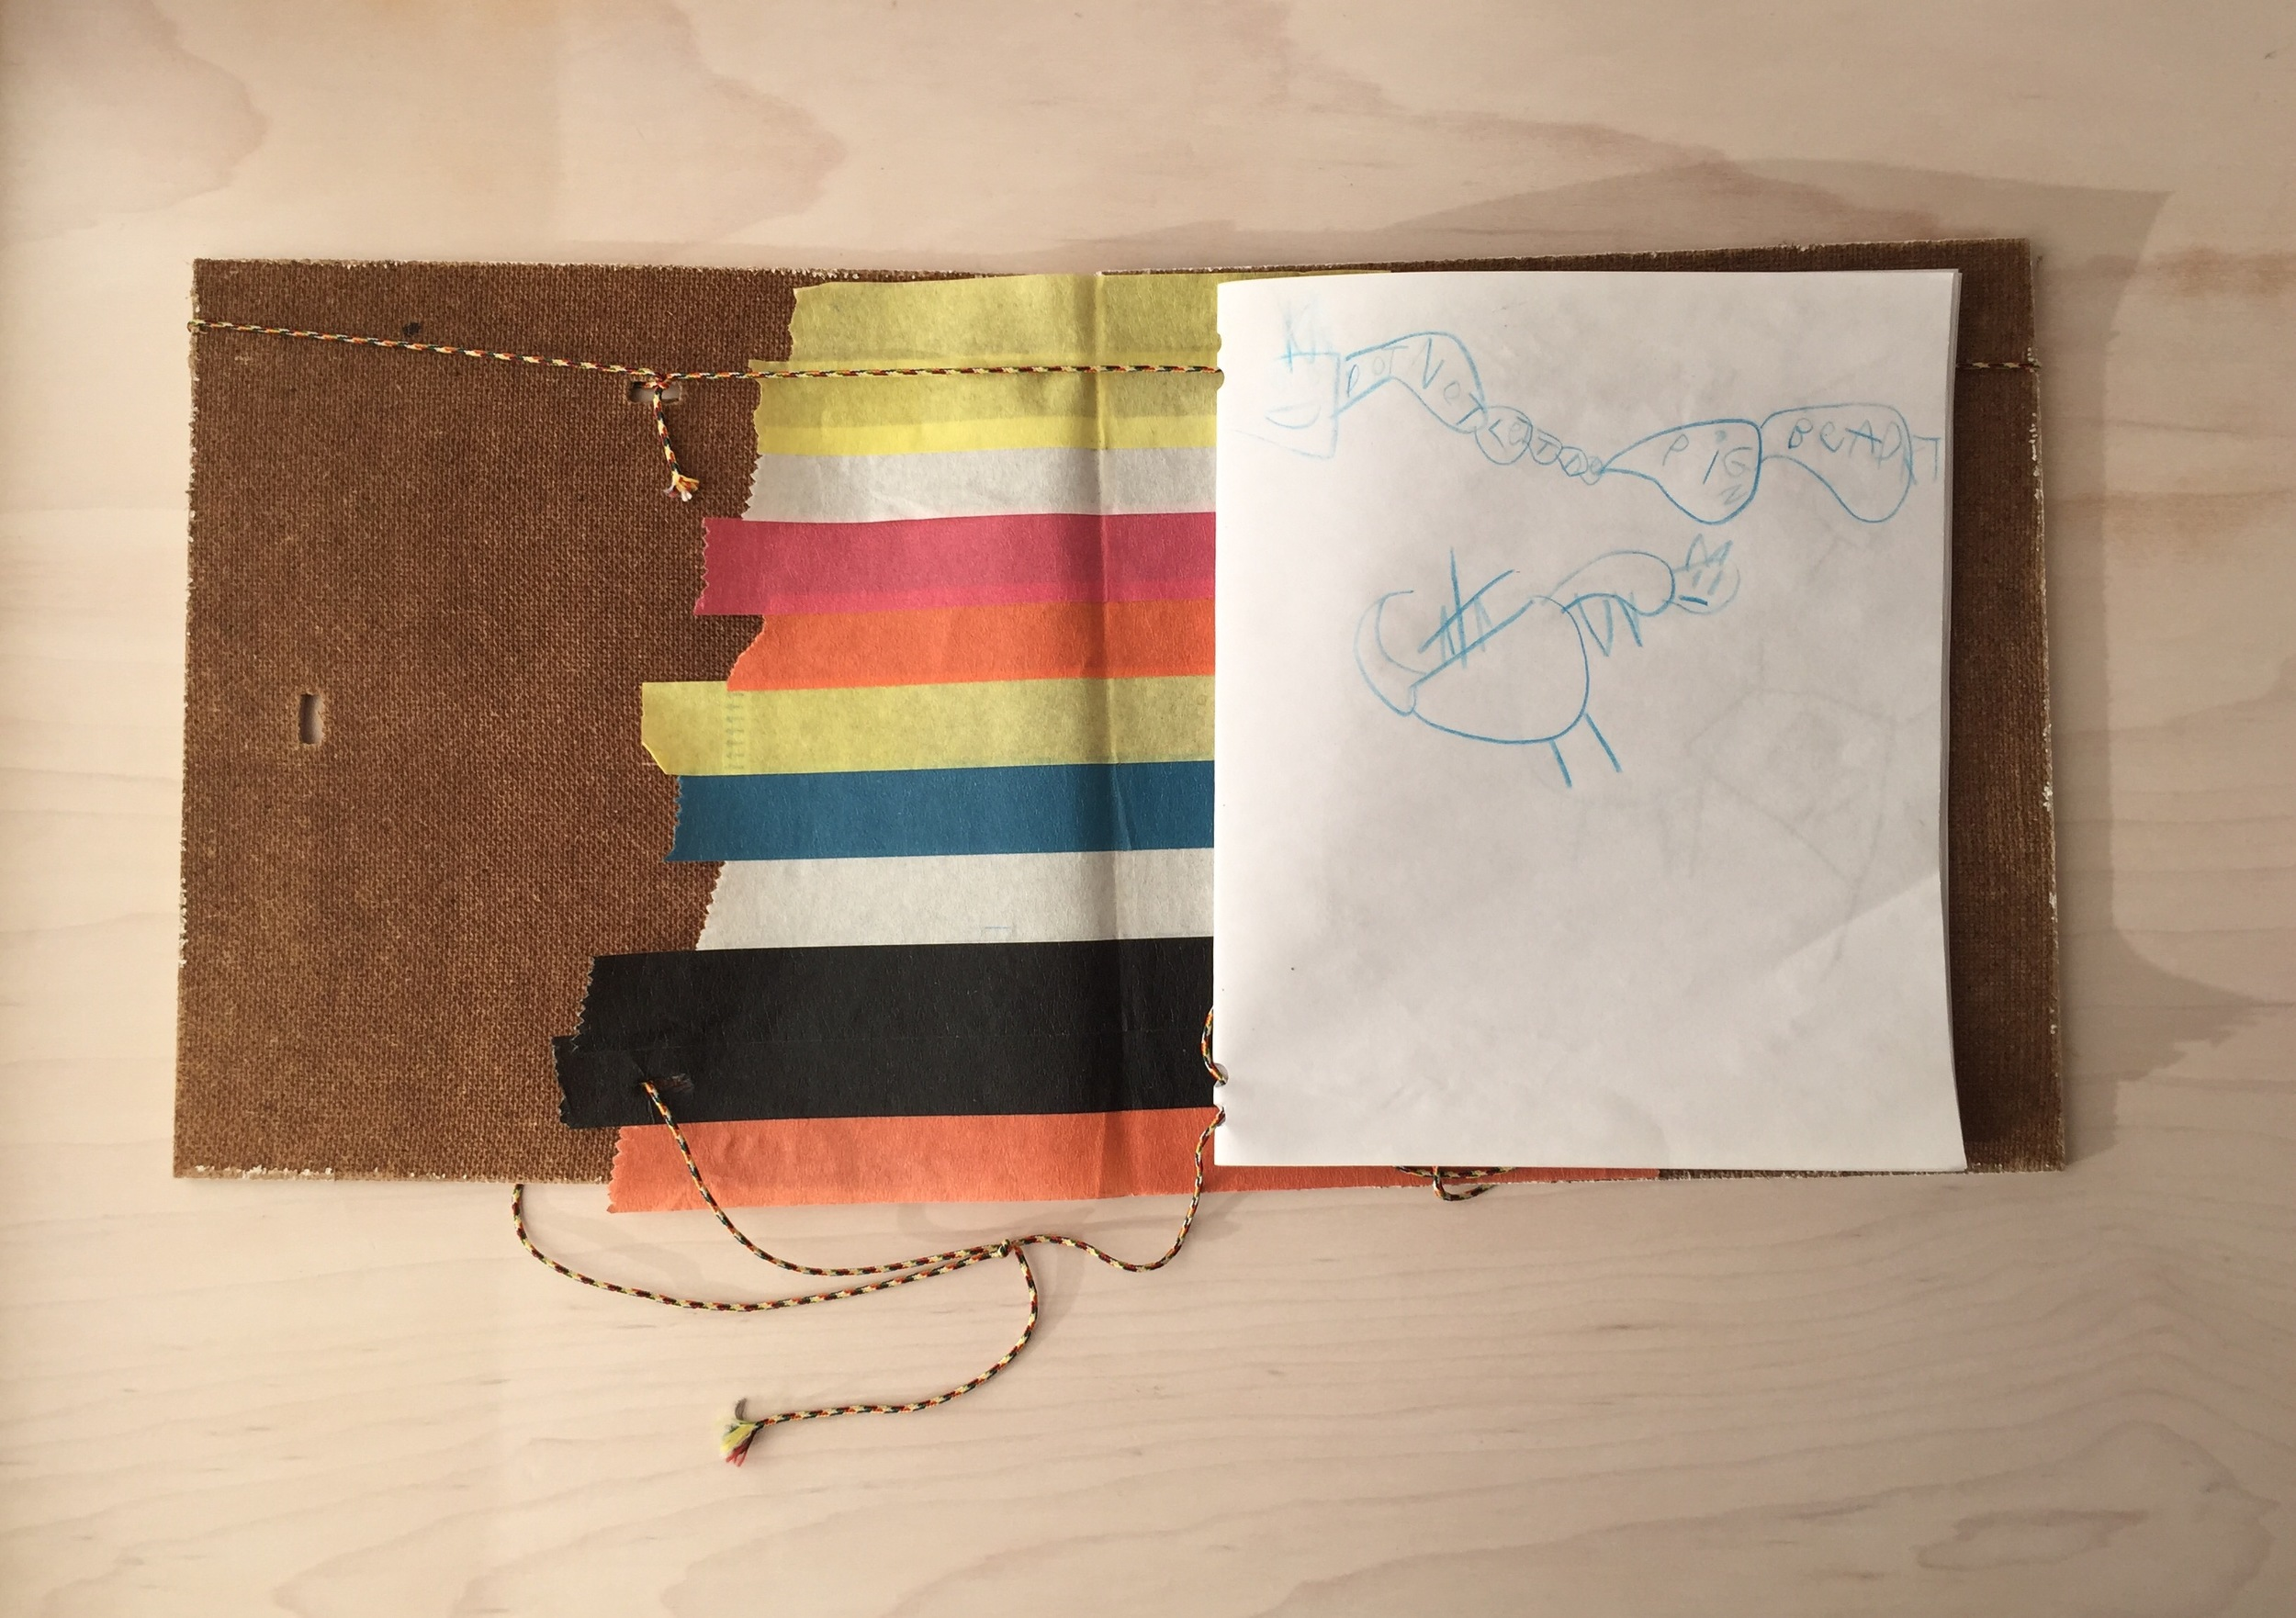 Handmade book by Marcas,age 6